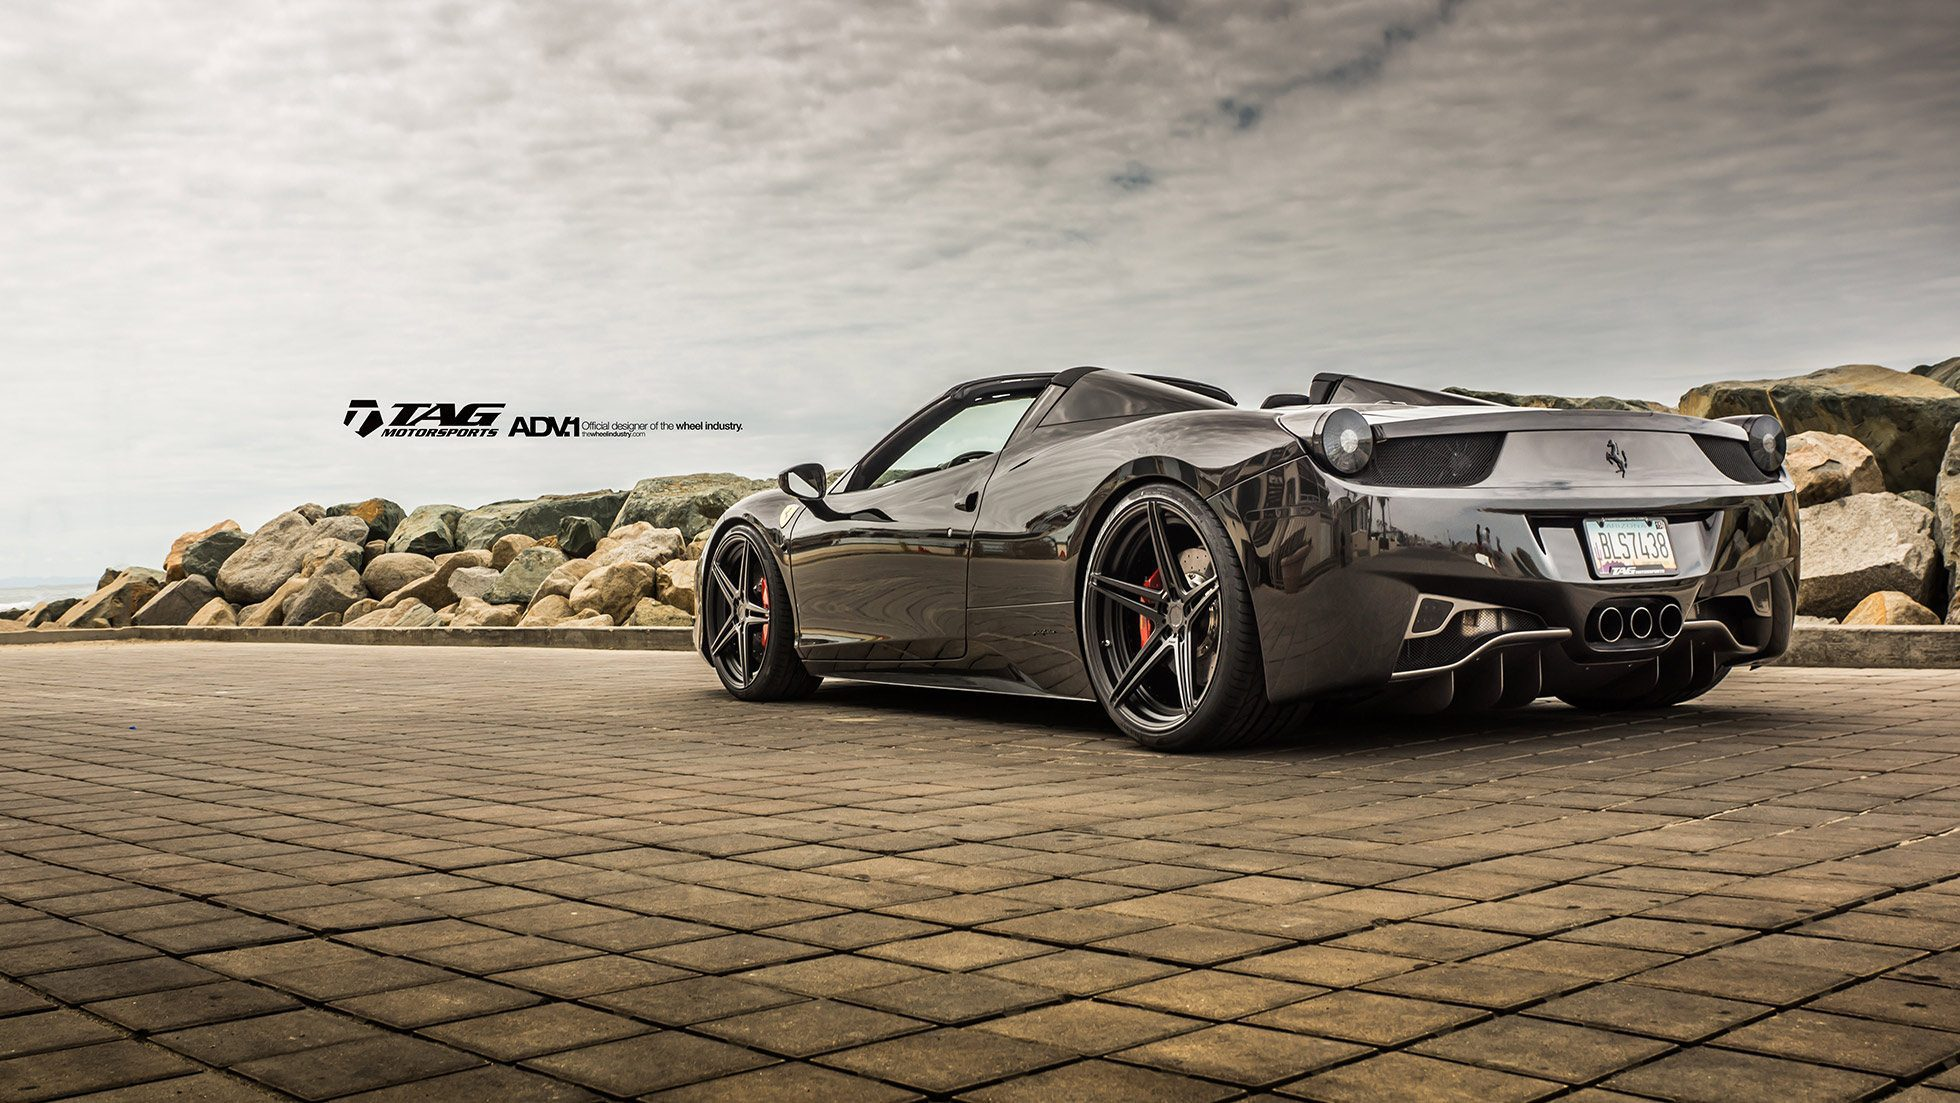 Ferrari 458 Italia Spider On Adv 1 Wheels By Tag Motorsports